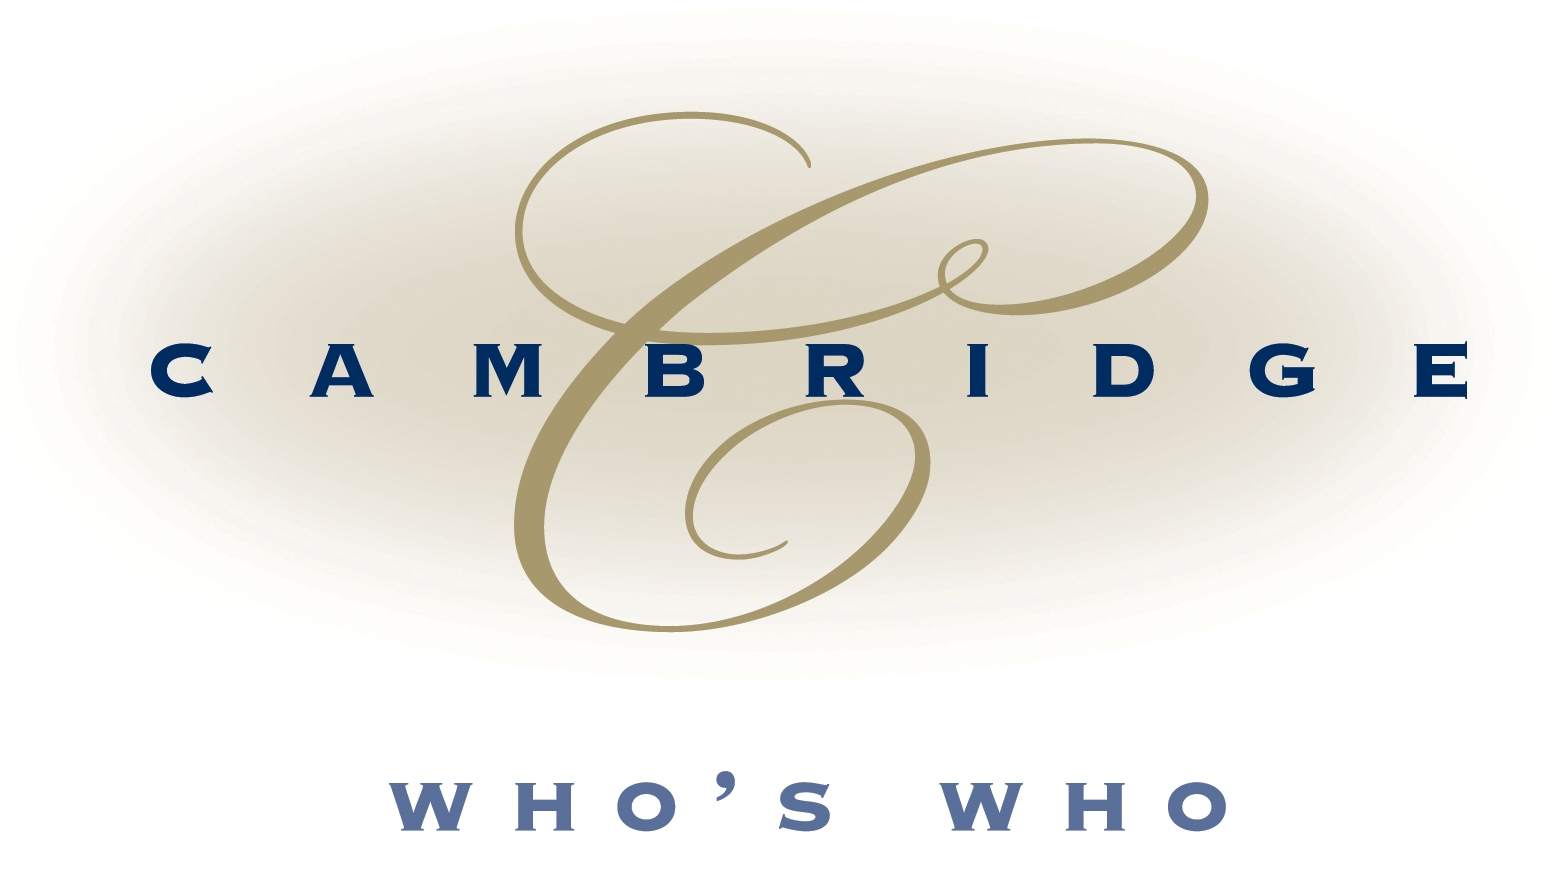 Cambridge Who's Who (2008 - 2009)